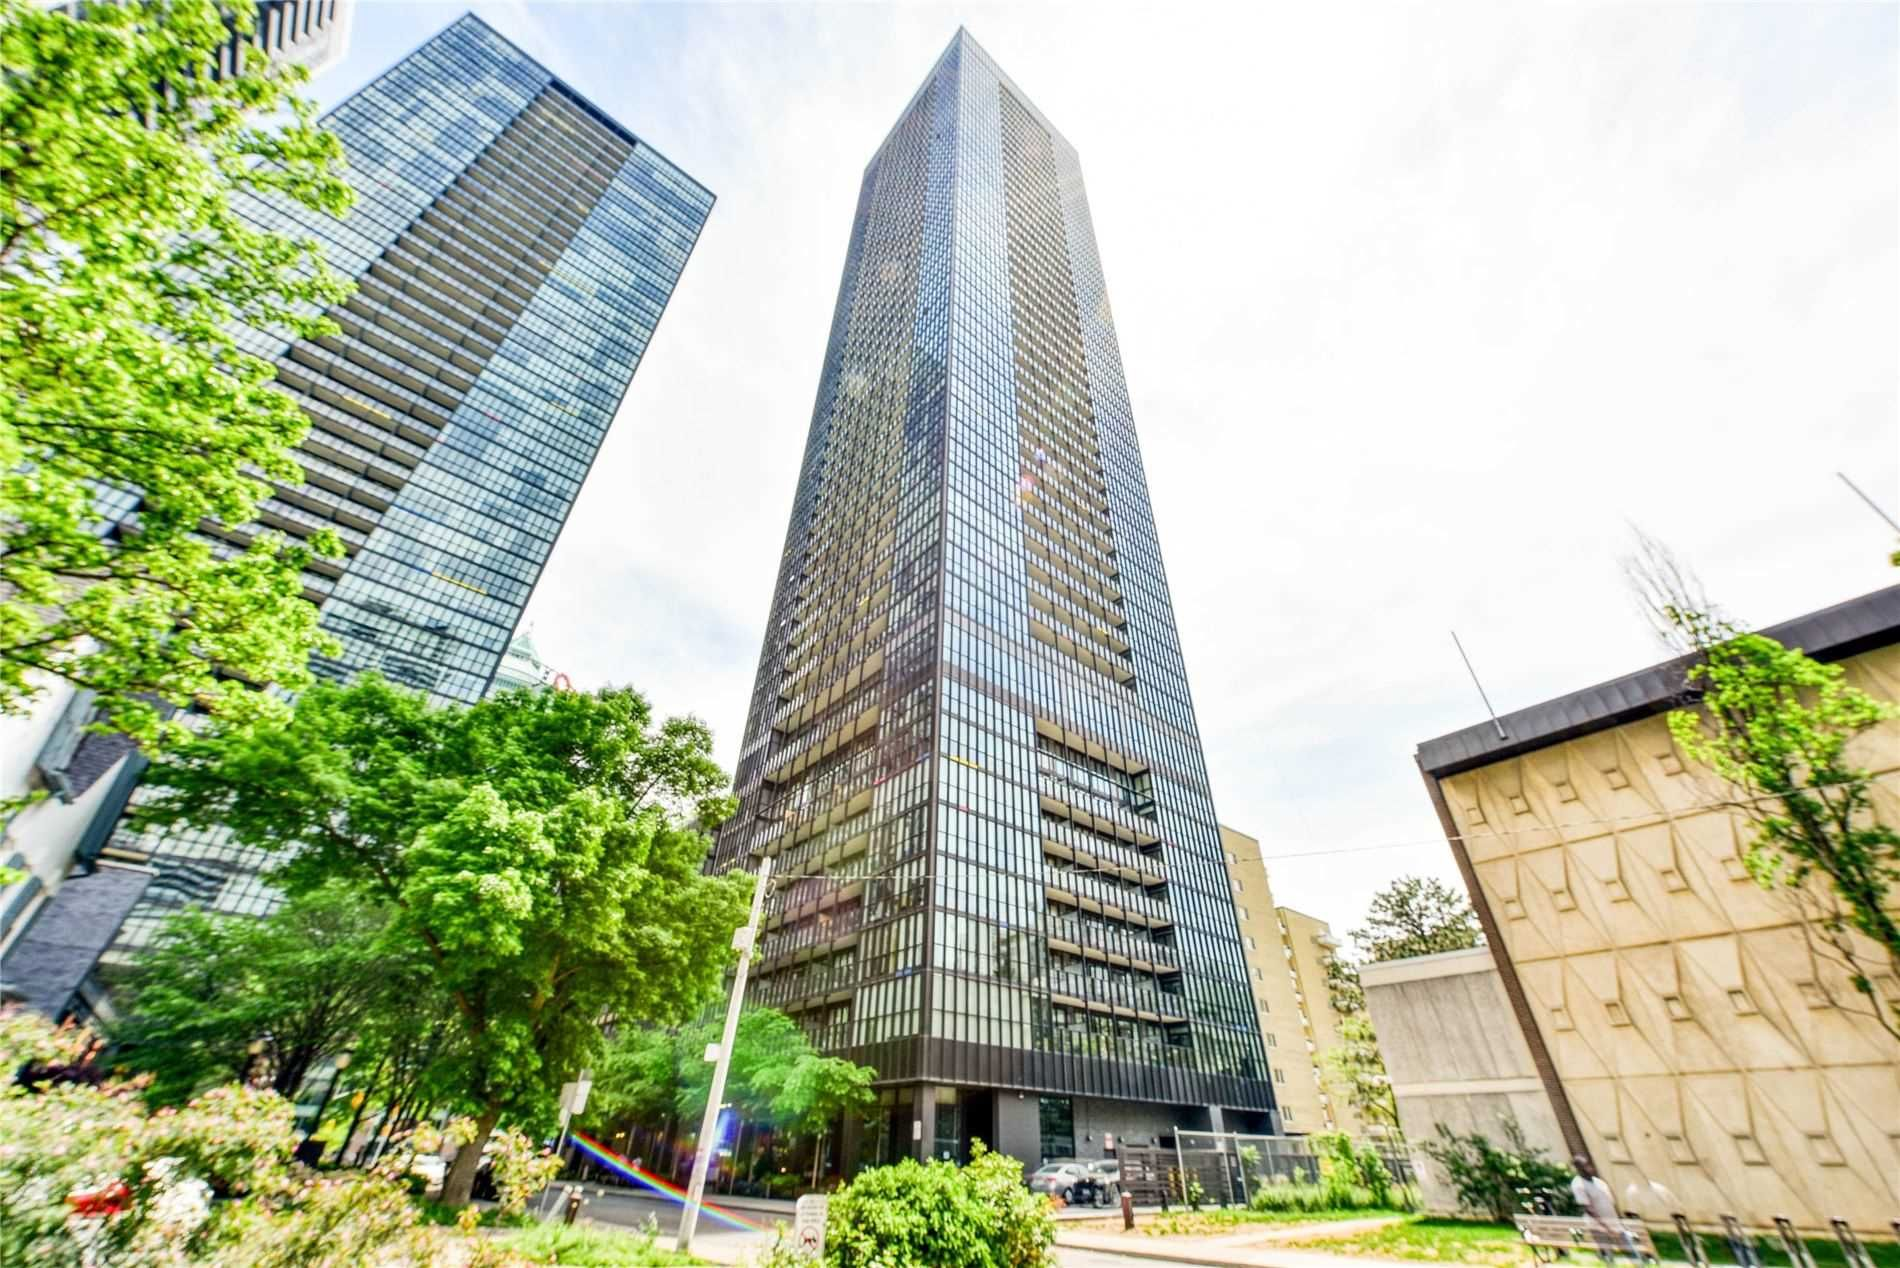 101 Charles St, unit 504 for sale in Toronto - image #1